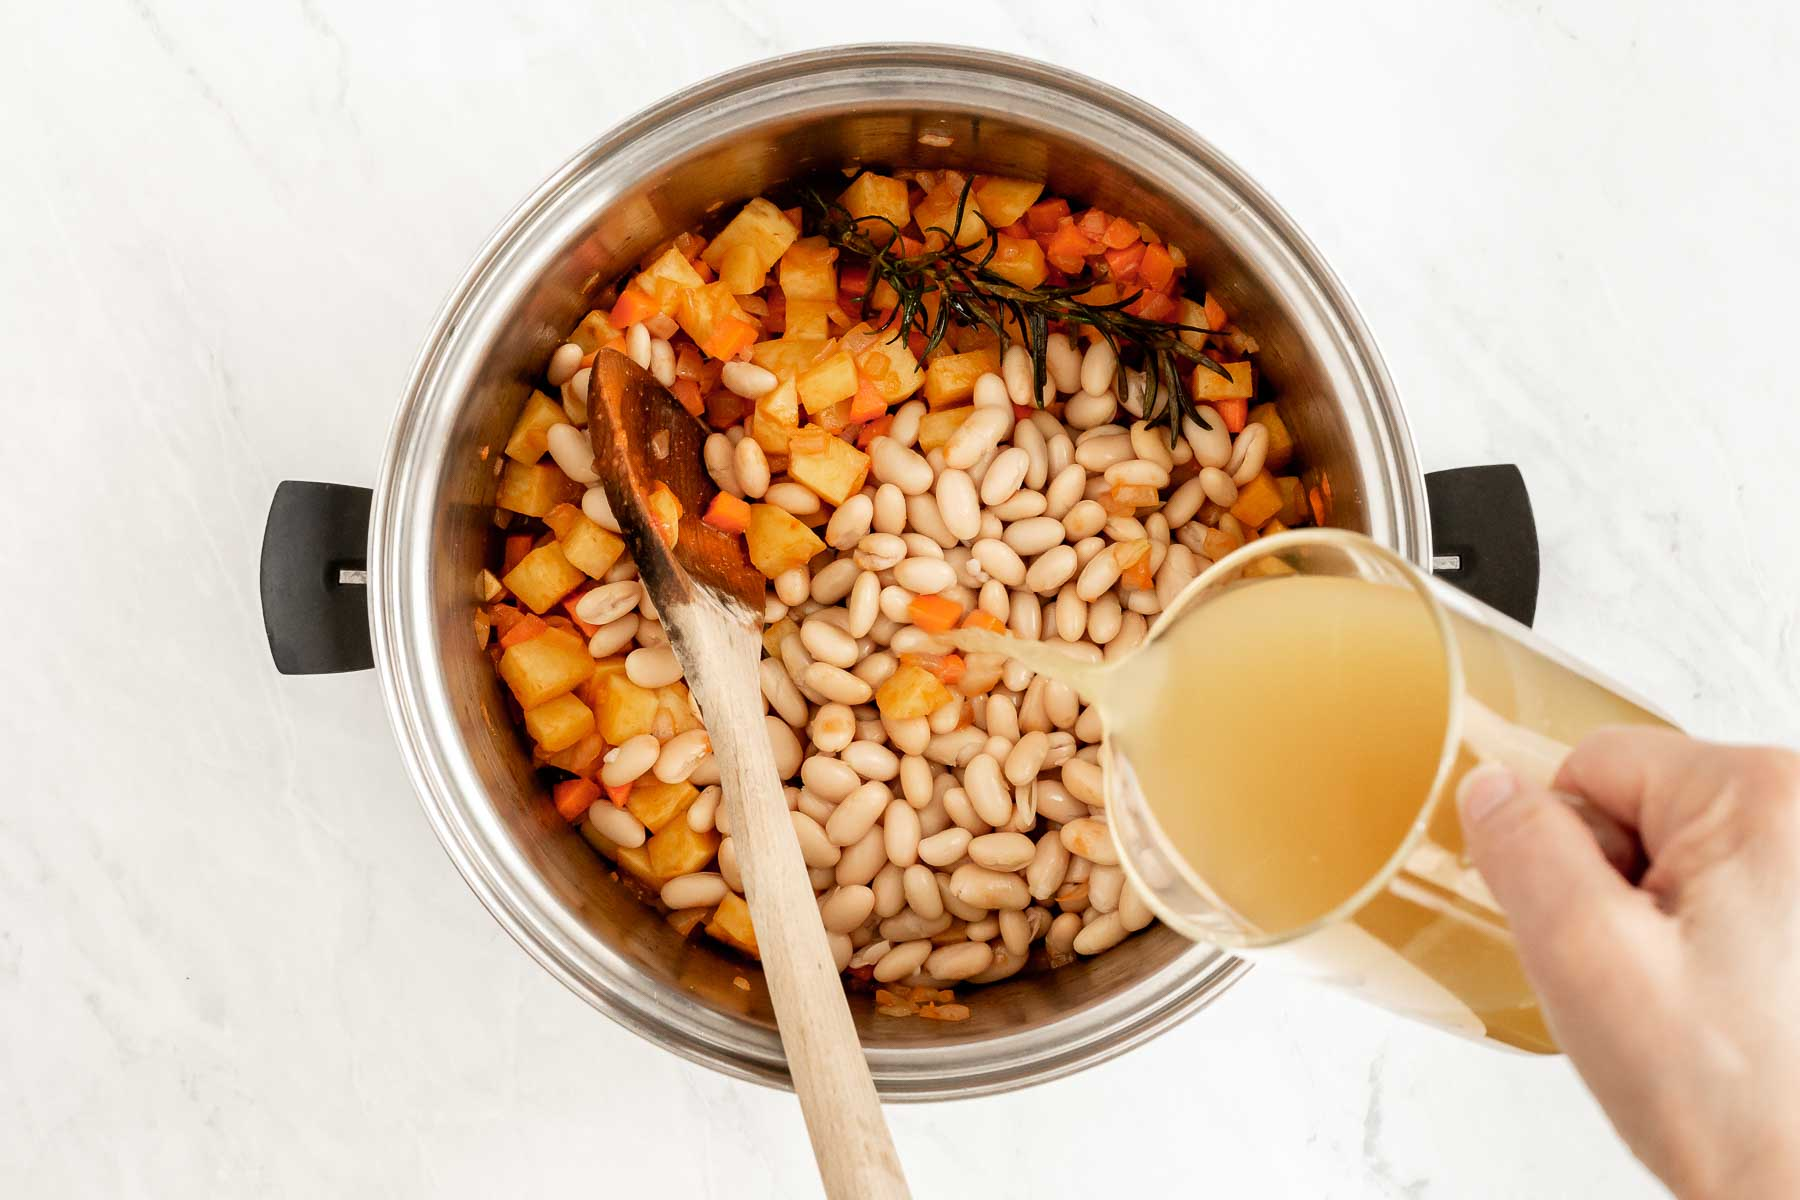 Pouring chicken broth into a soup pot with vegetables.